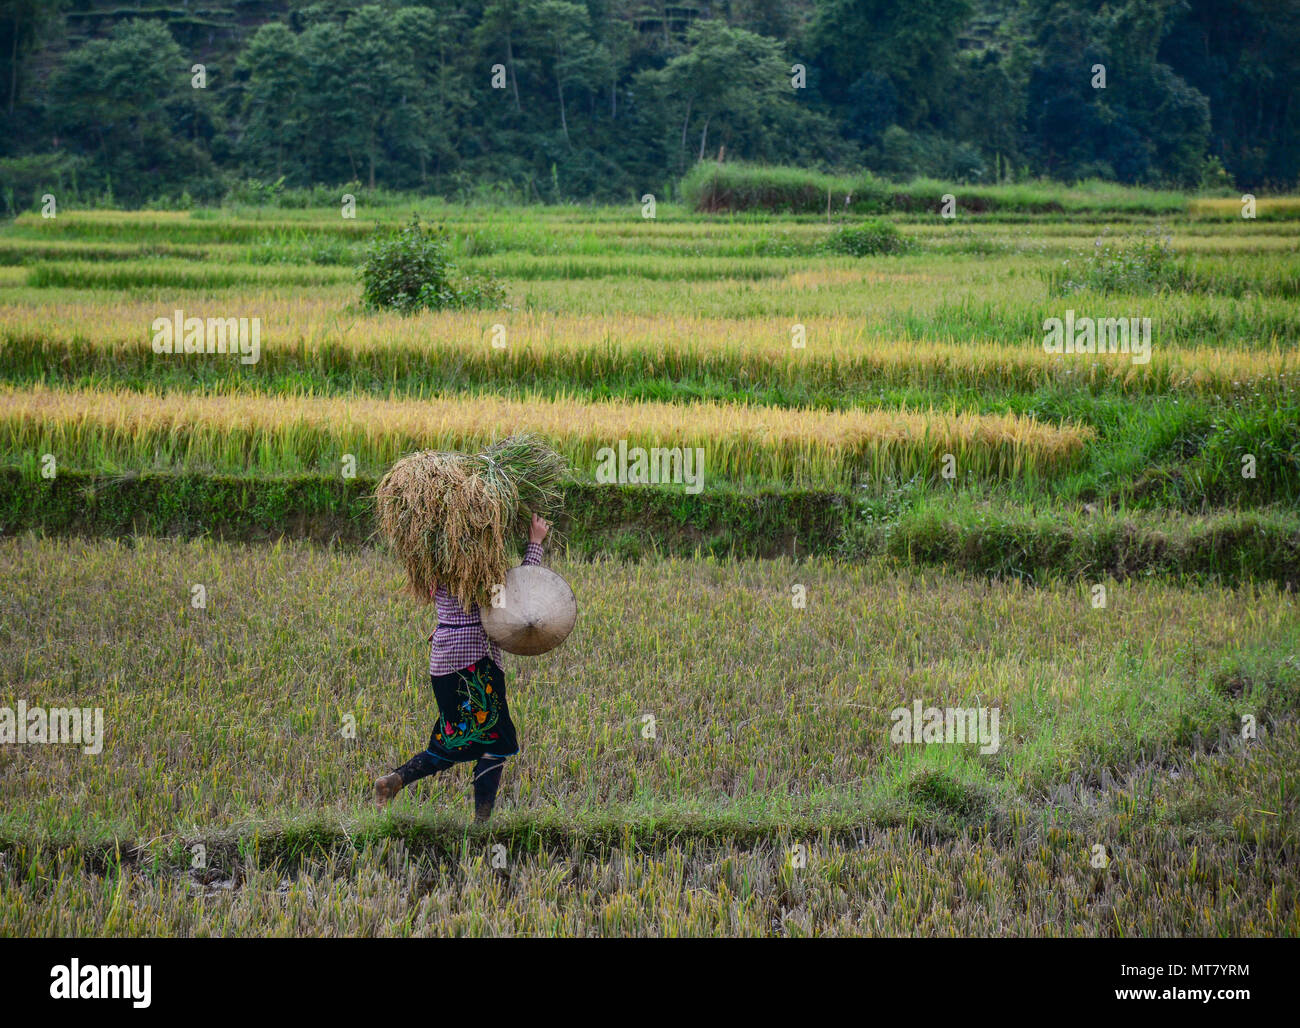 People havesting rice on the field at summer in Northern Vietnam. - Stock Image